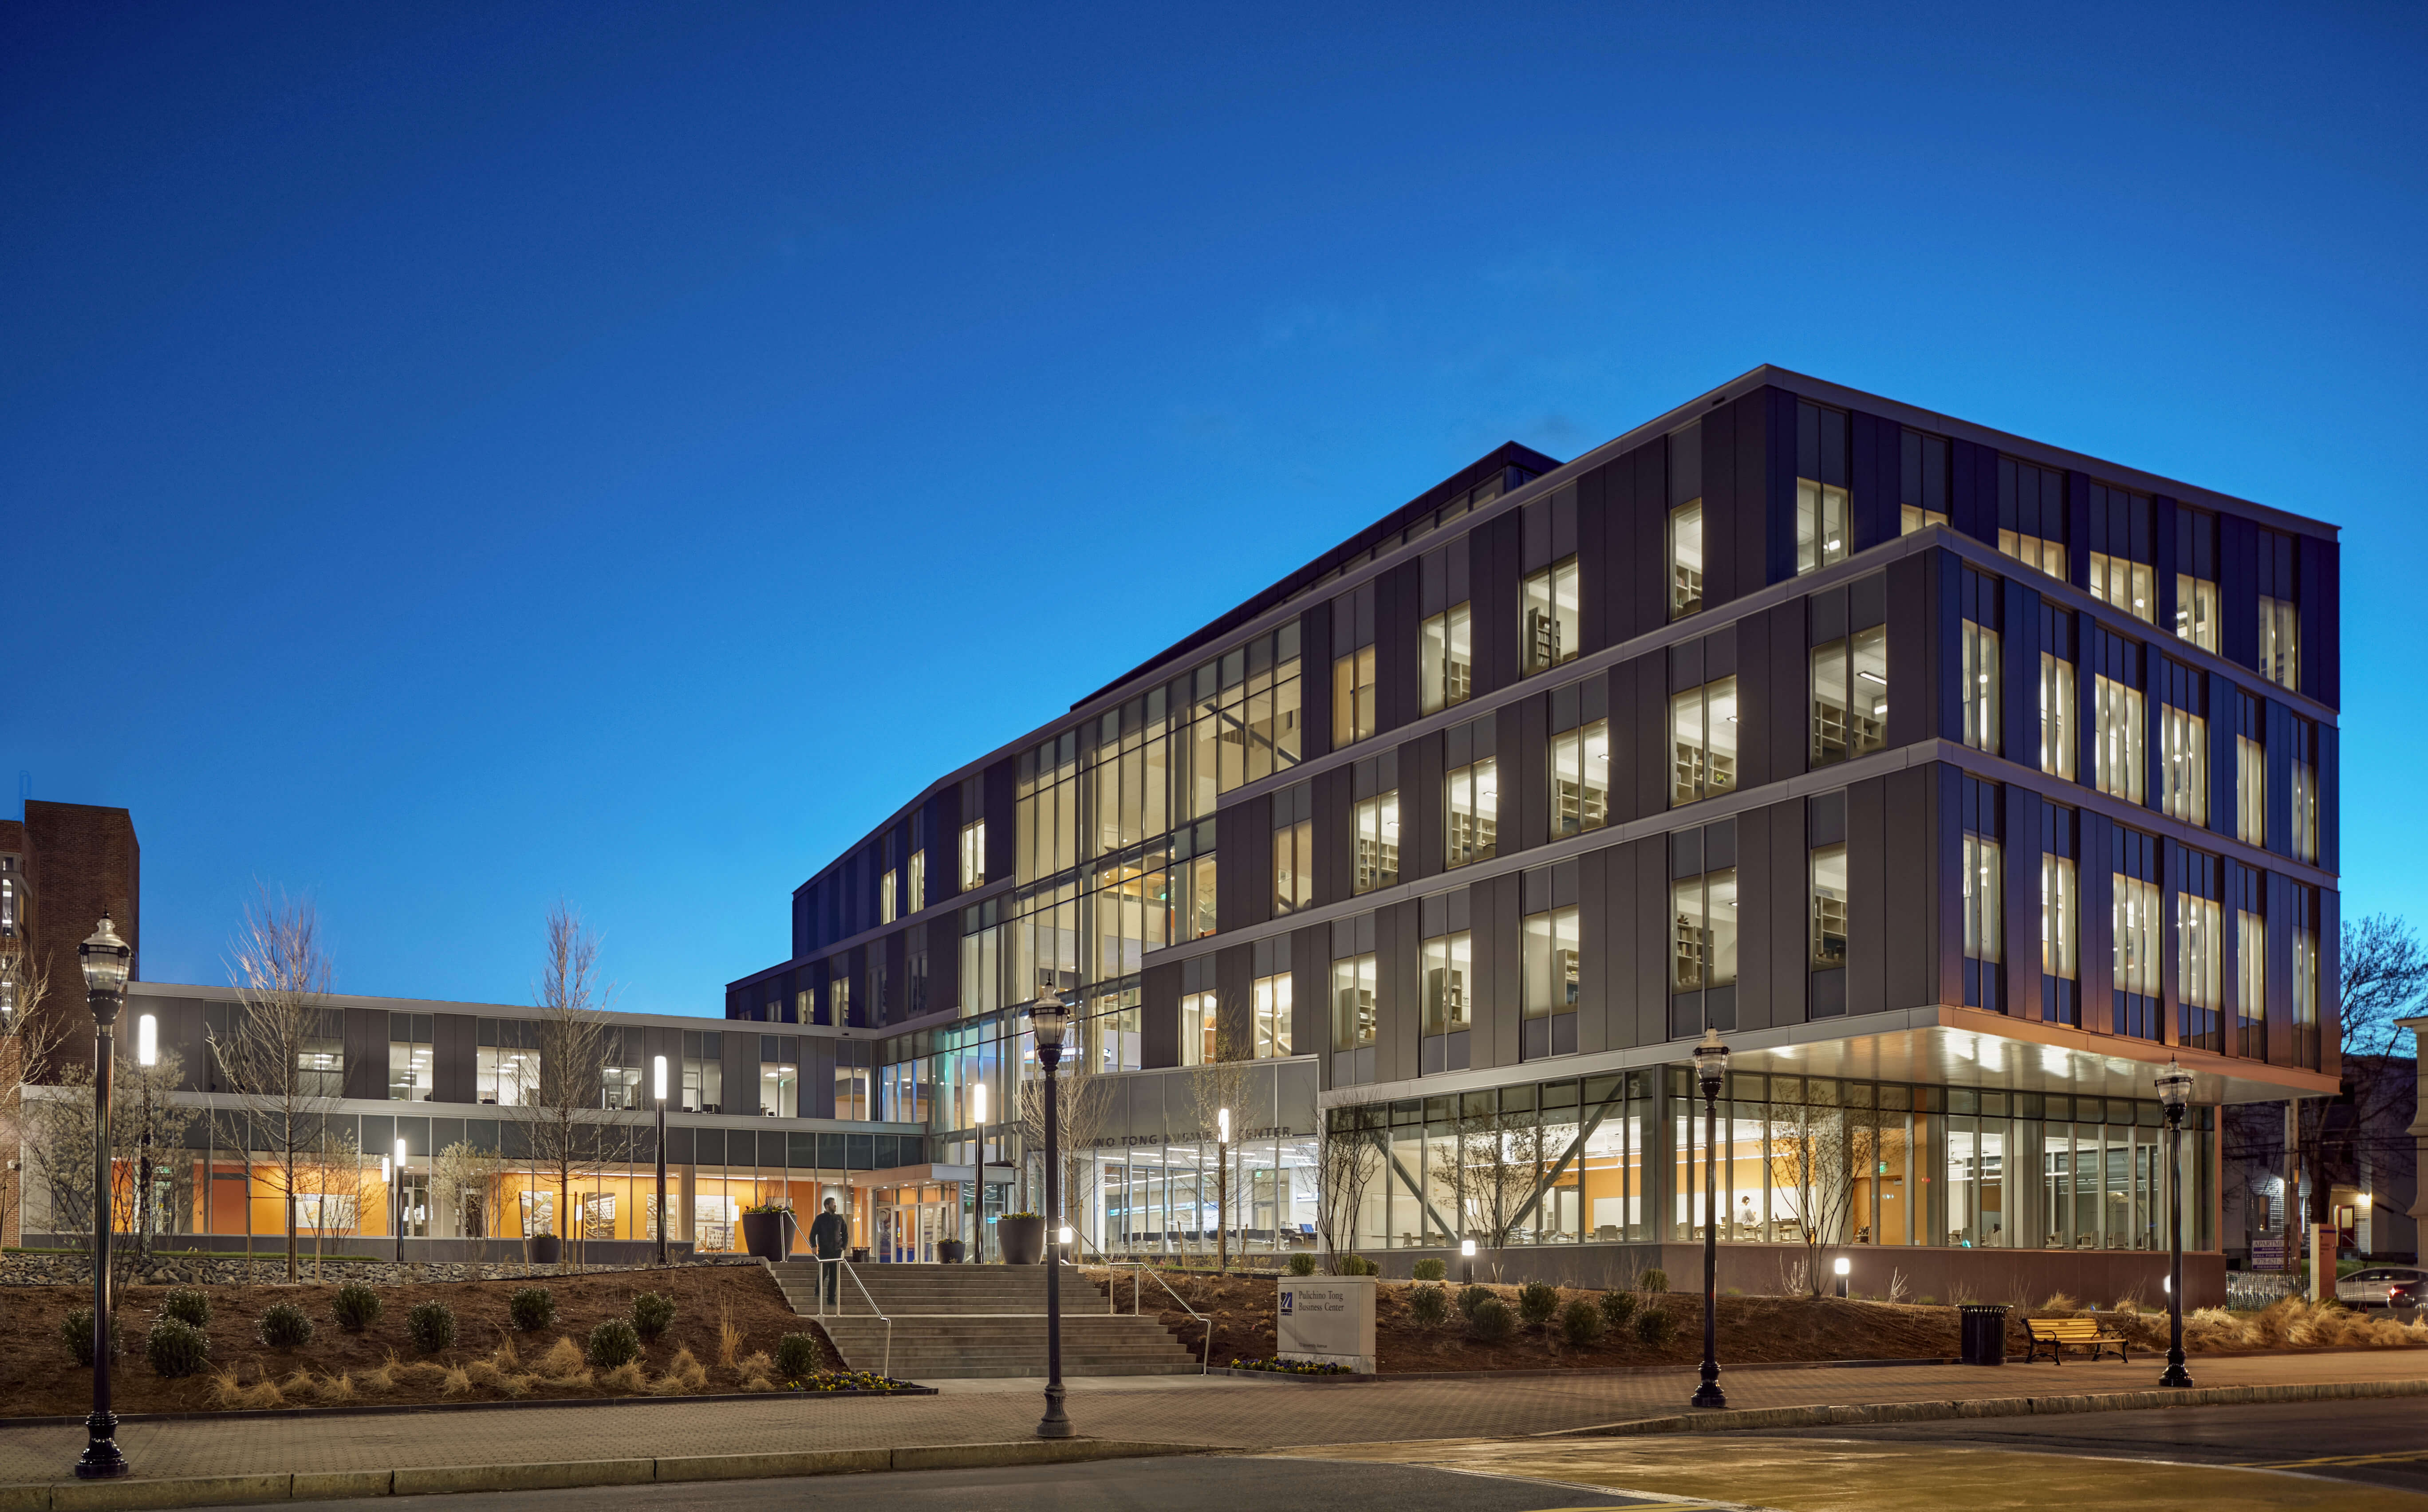 UMass Lowell: Discover the true value of an Online MBA